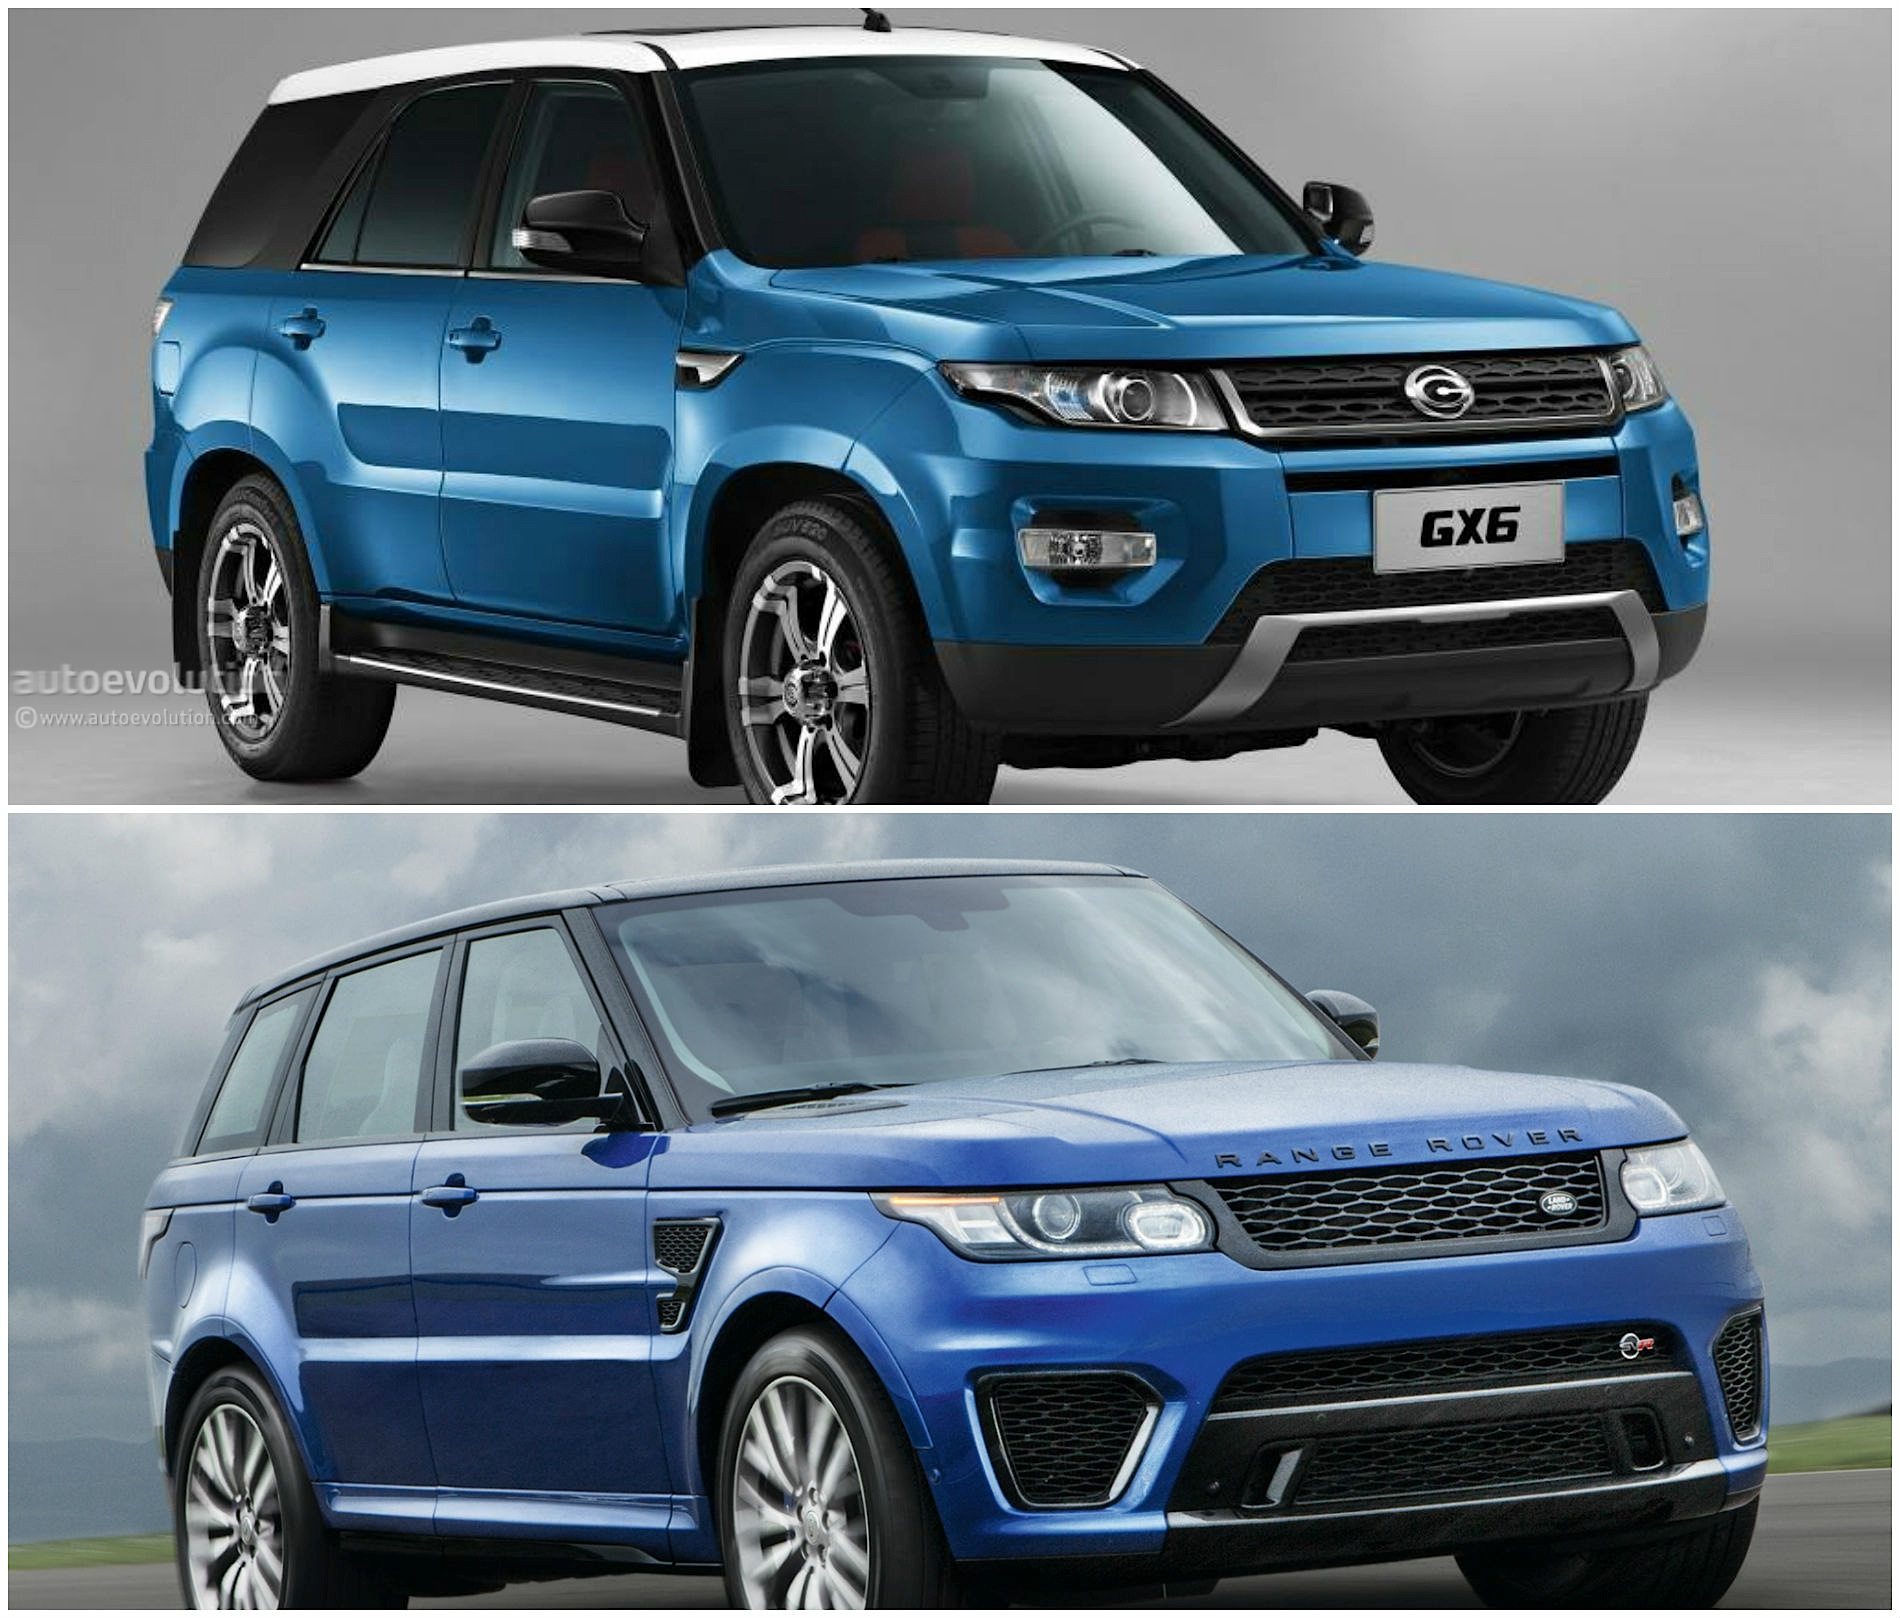 Land Rover: Range Rover Sport Cloned By The Chinese: It's Called The